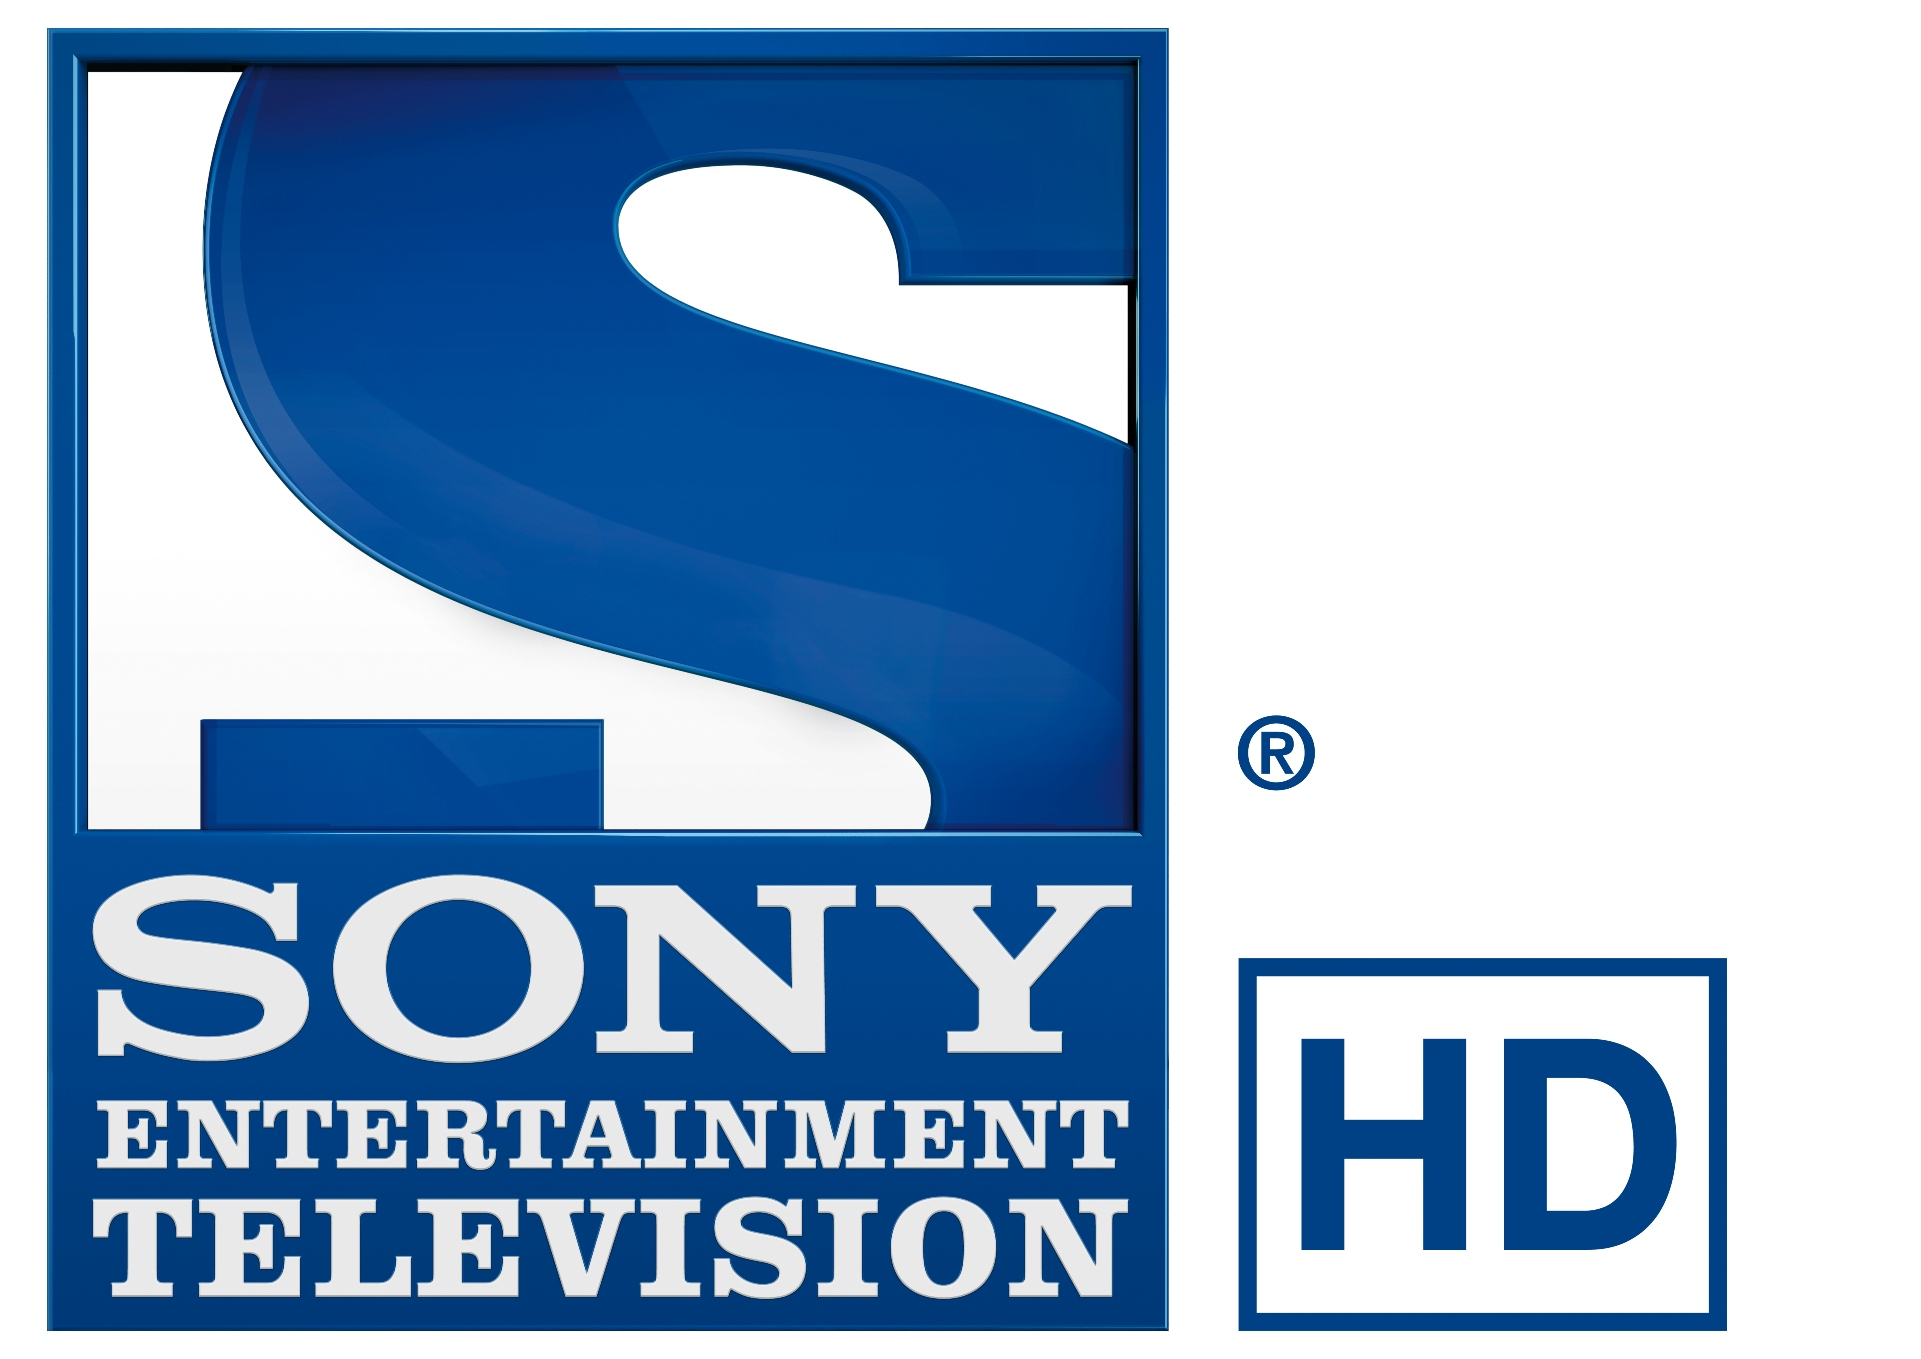 filelogo sony entertainment television hdjpg wikimedia